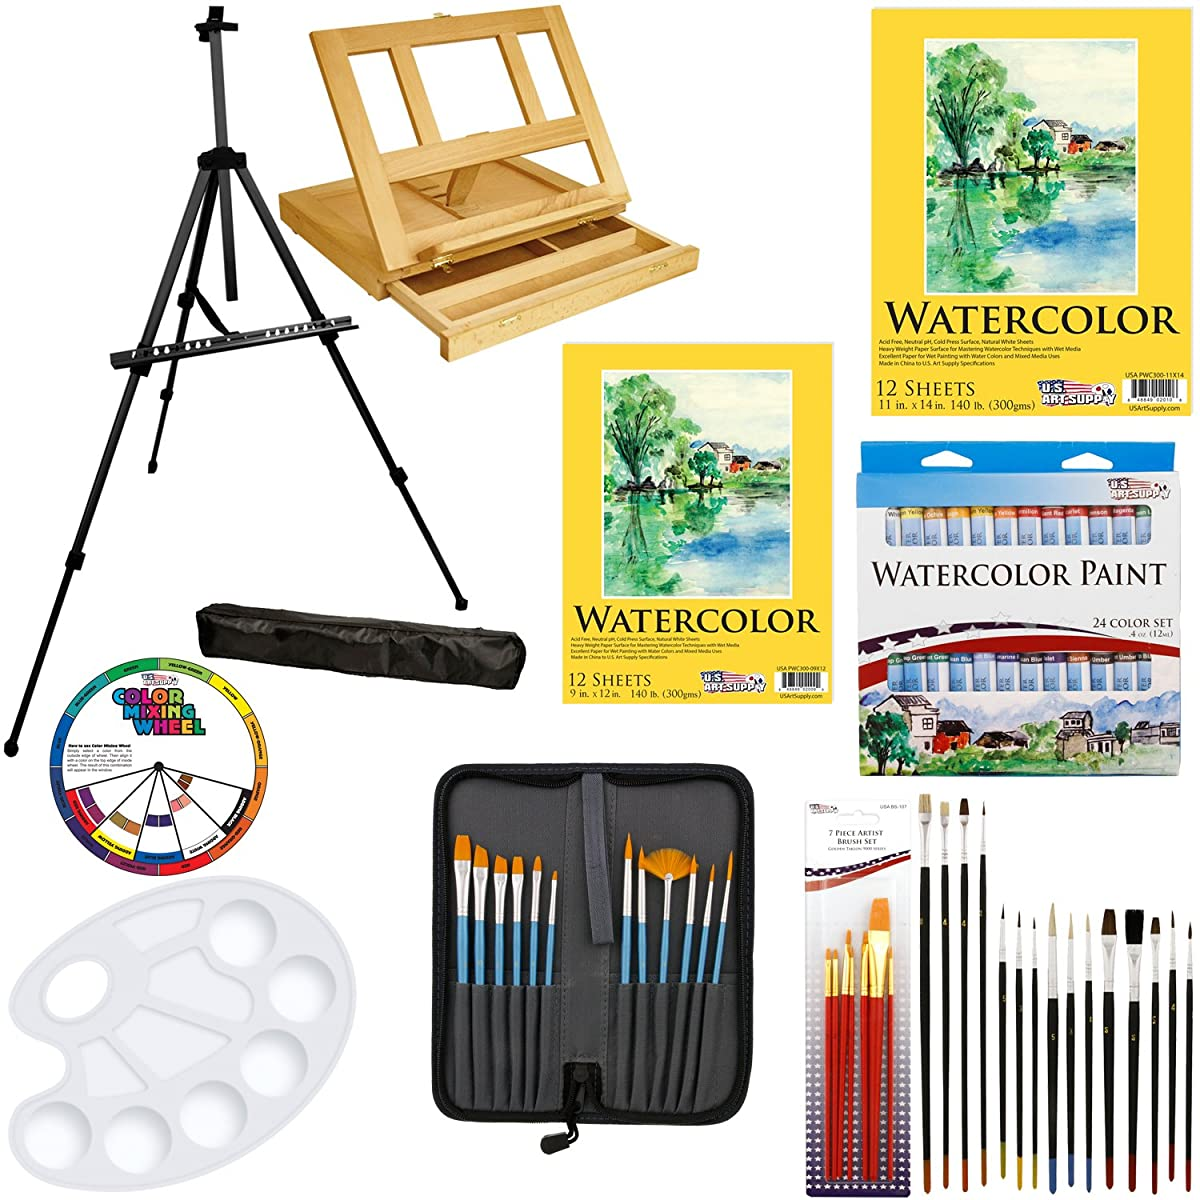 "US Art Supply 69-Piece Watercolor Paint Set with Aluminum Easel, Wood Table Easel, 24 Watercolor Colors, 9""x12"" Watercolor Paper Pad, 11""x14"" Watercolor Paper Pad, 34 Brushes, 10-Well Pallete"